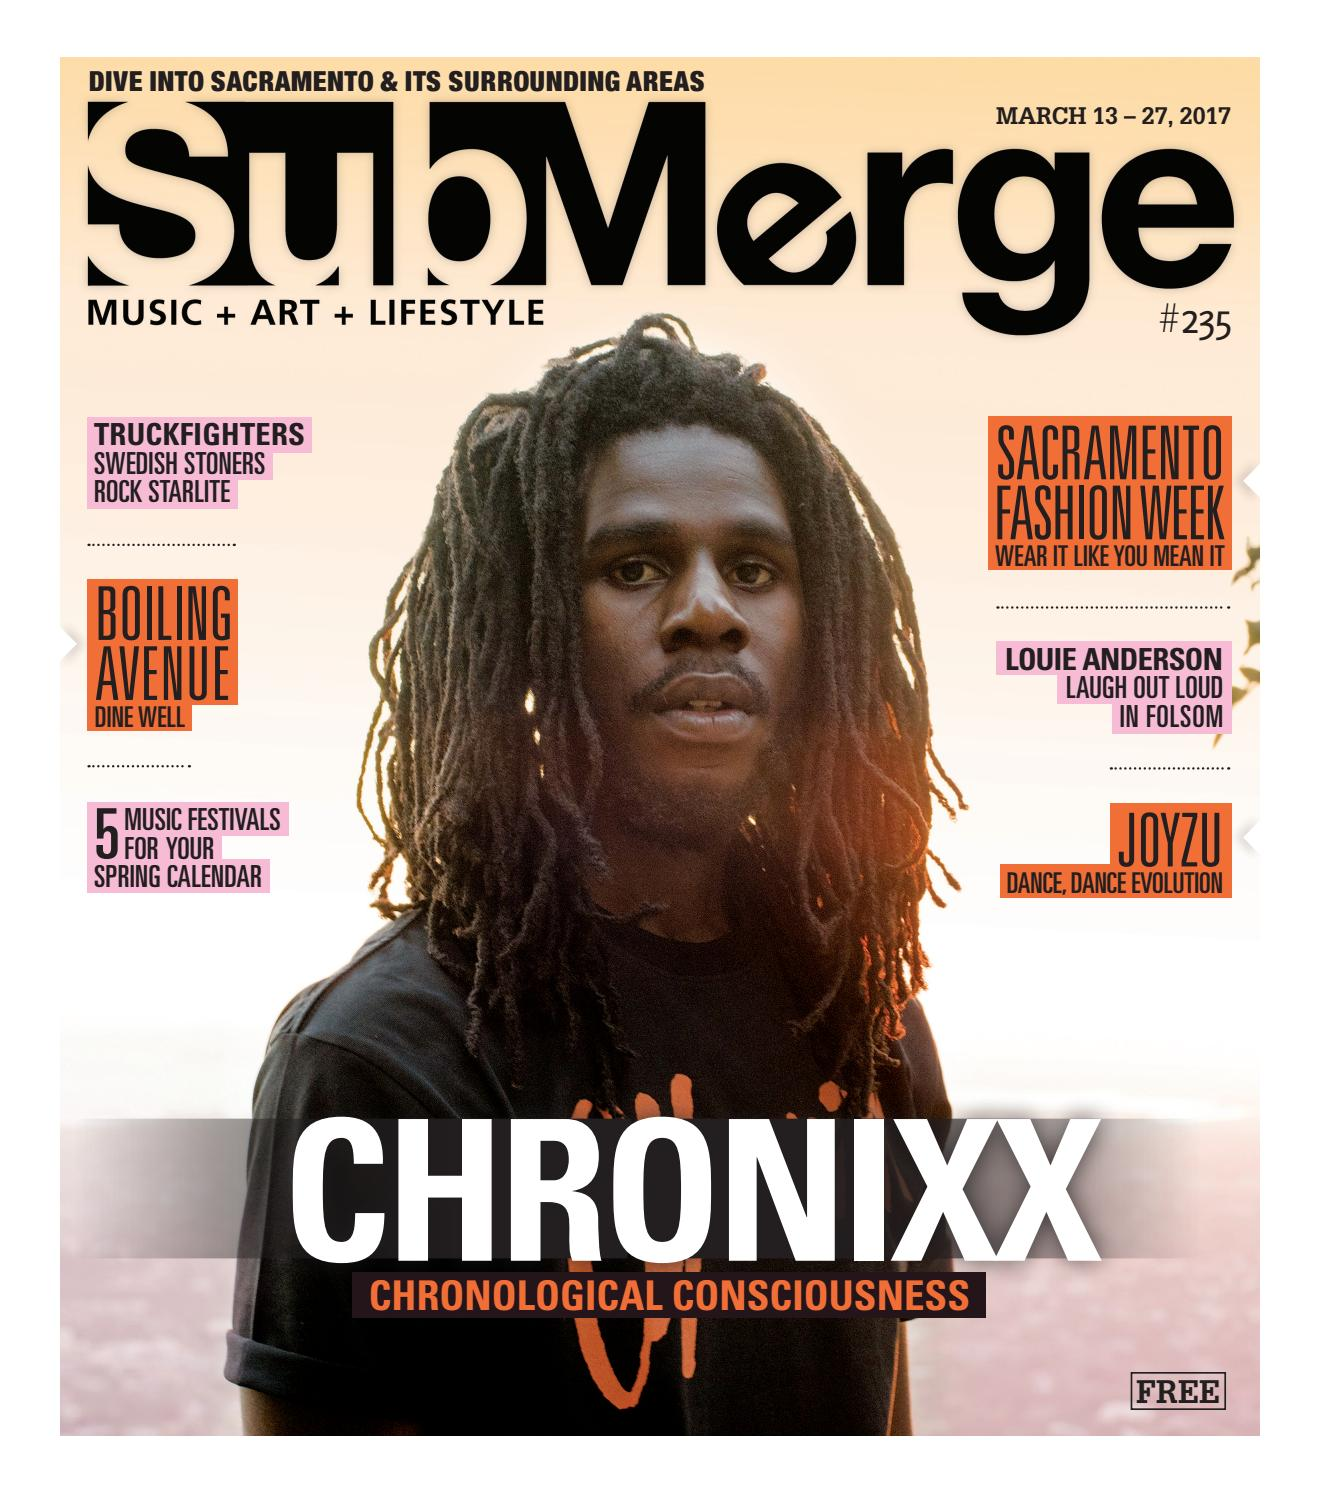 Submerge Magazine: Issue 235 (March 13 - March 27, 2017) by Submerge